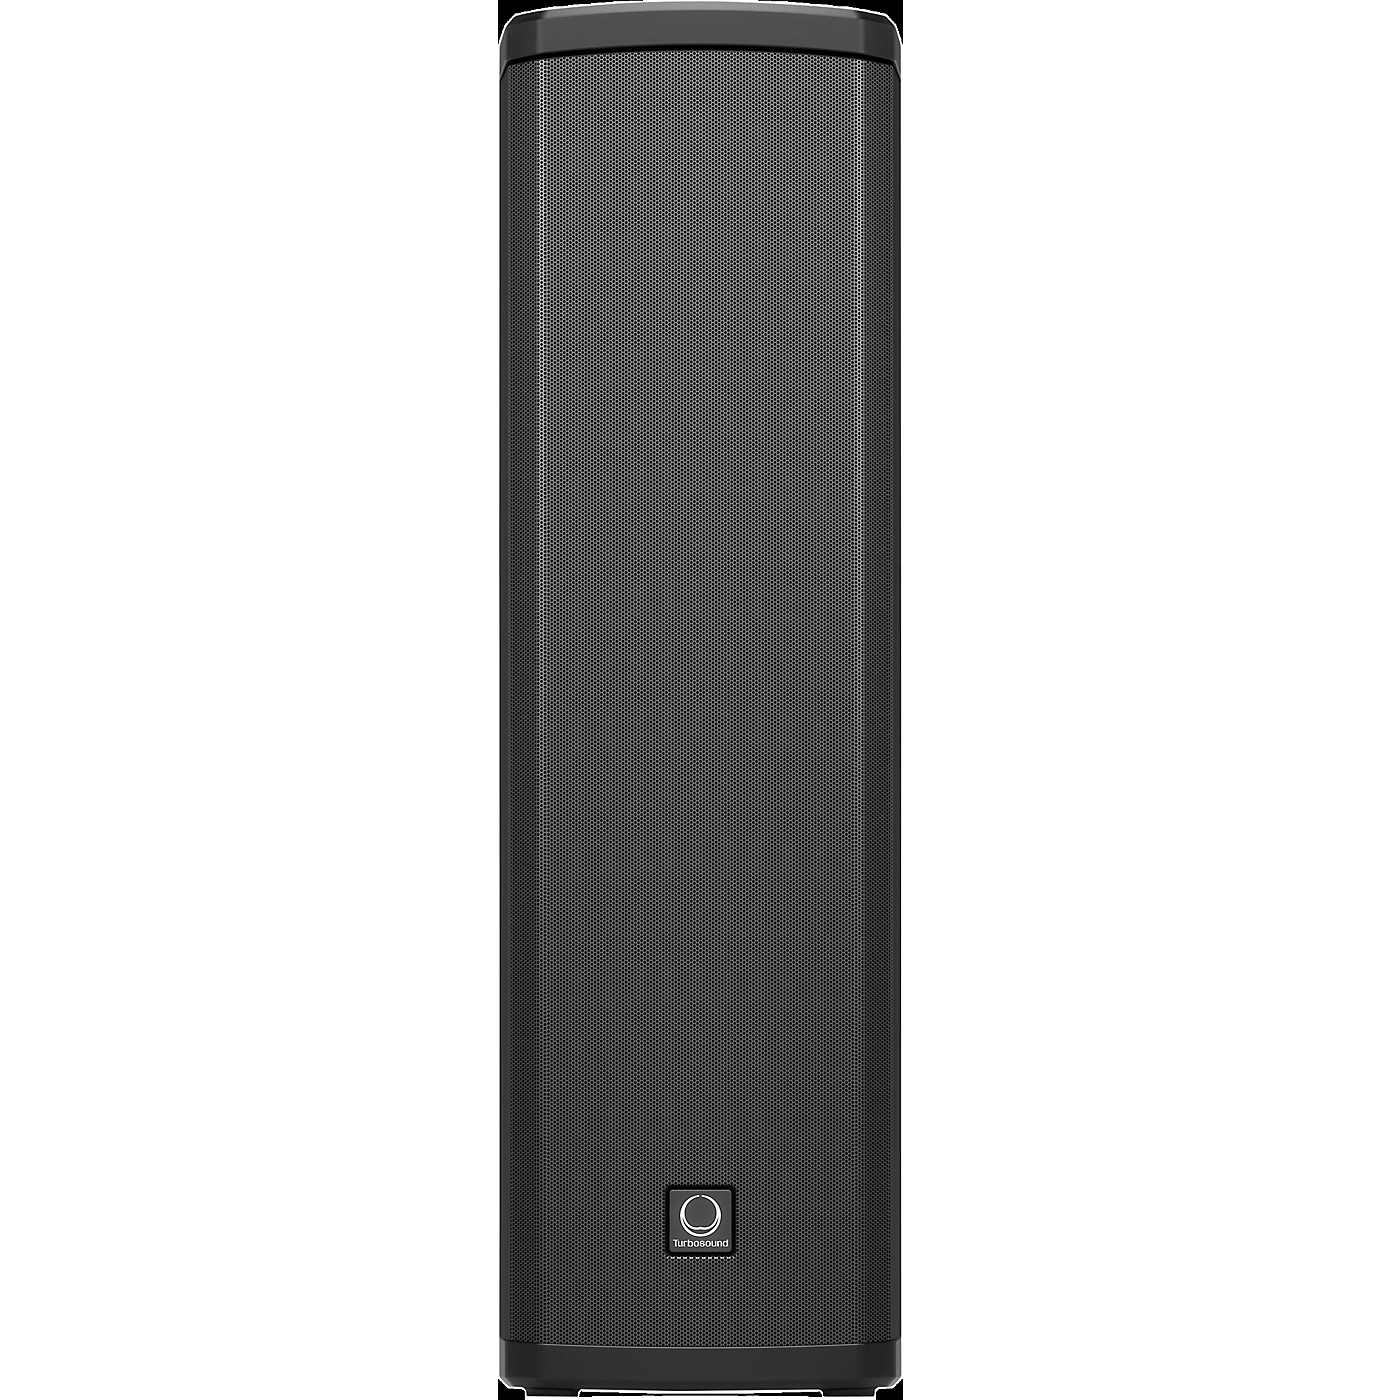 Turbosound iNSPIRE iP300 Personal Line Array Column-Style PA Active Loudspeaker System with Bluetooth thumbnail